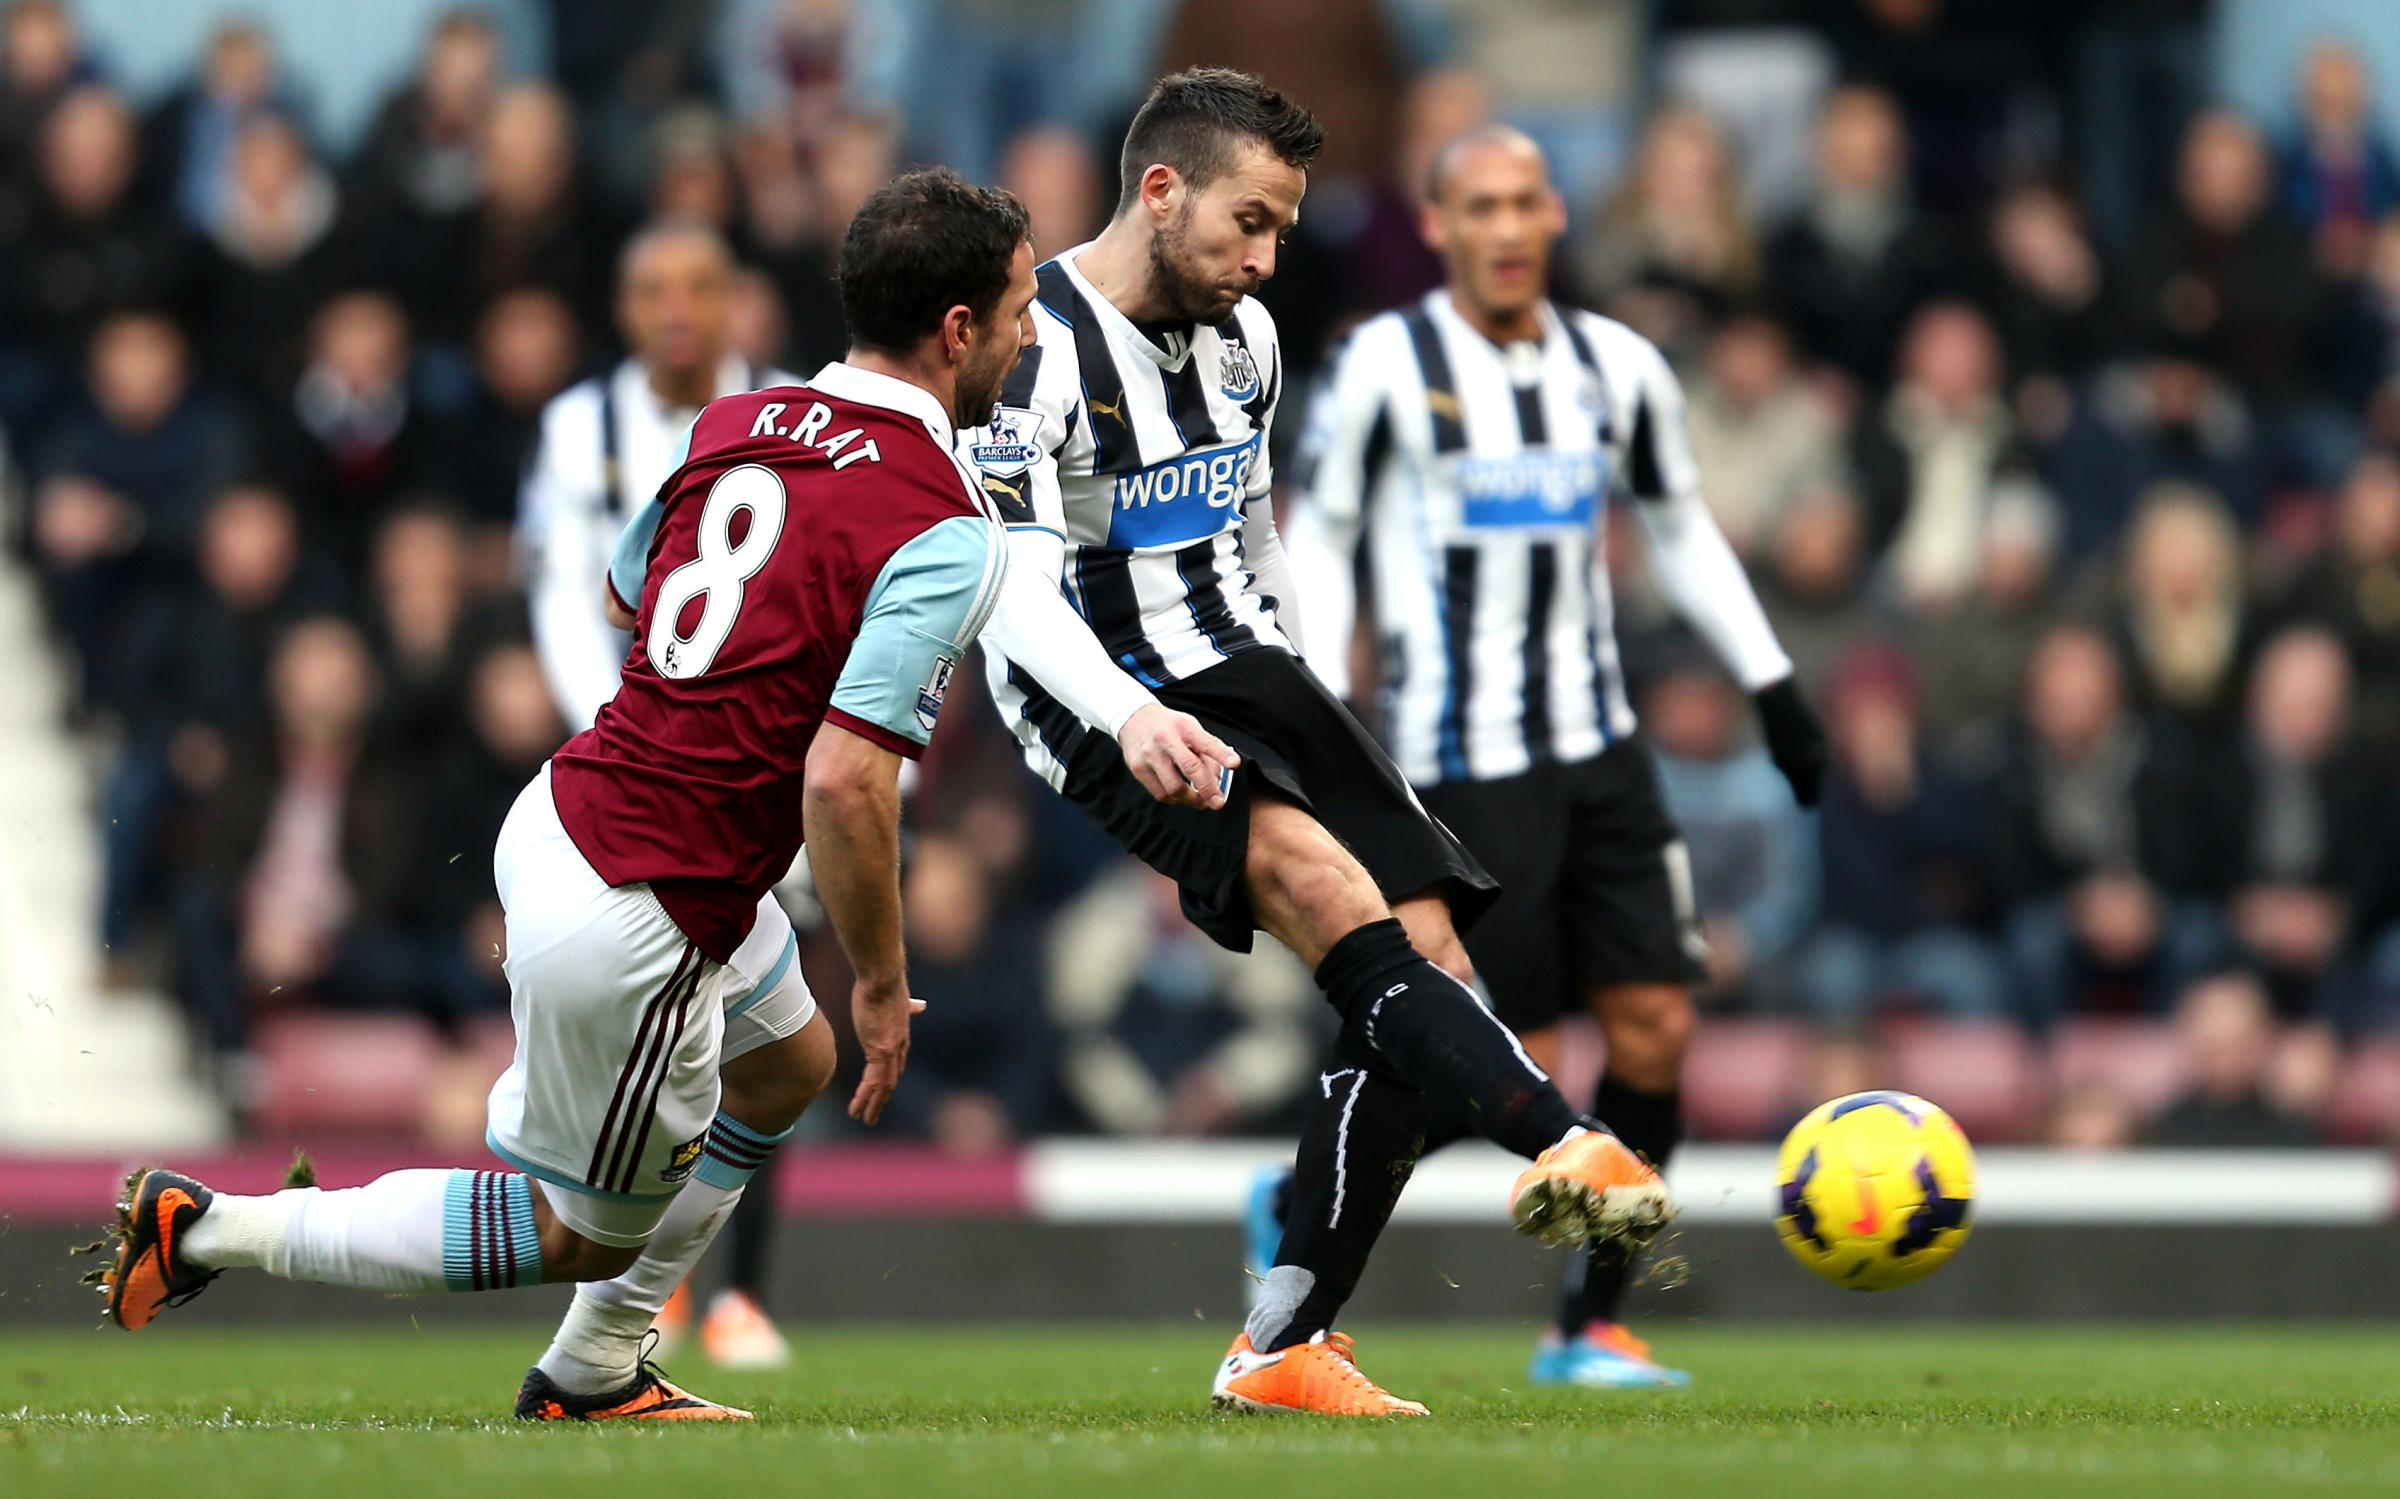 JANUARY MOVE? Newcastle midfielder Yohan Cabaye is attracting interest this month